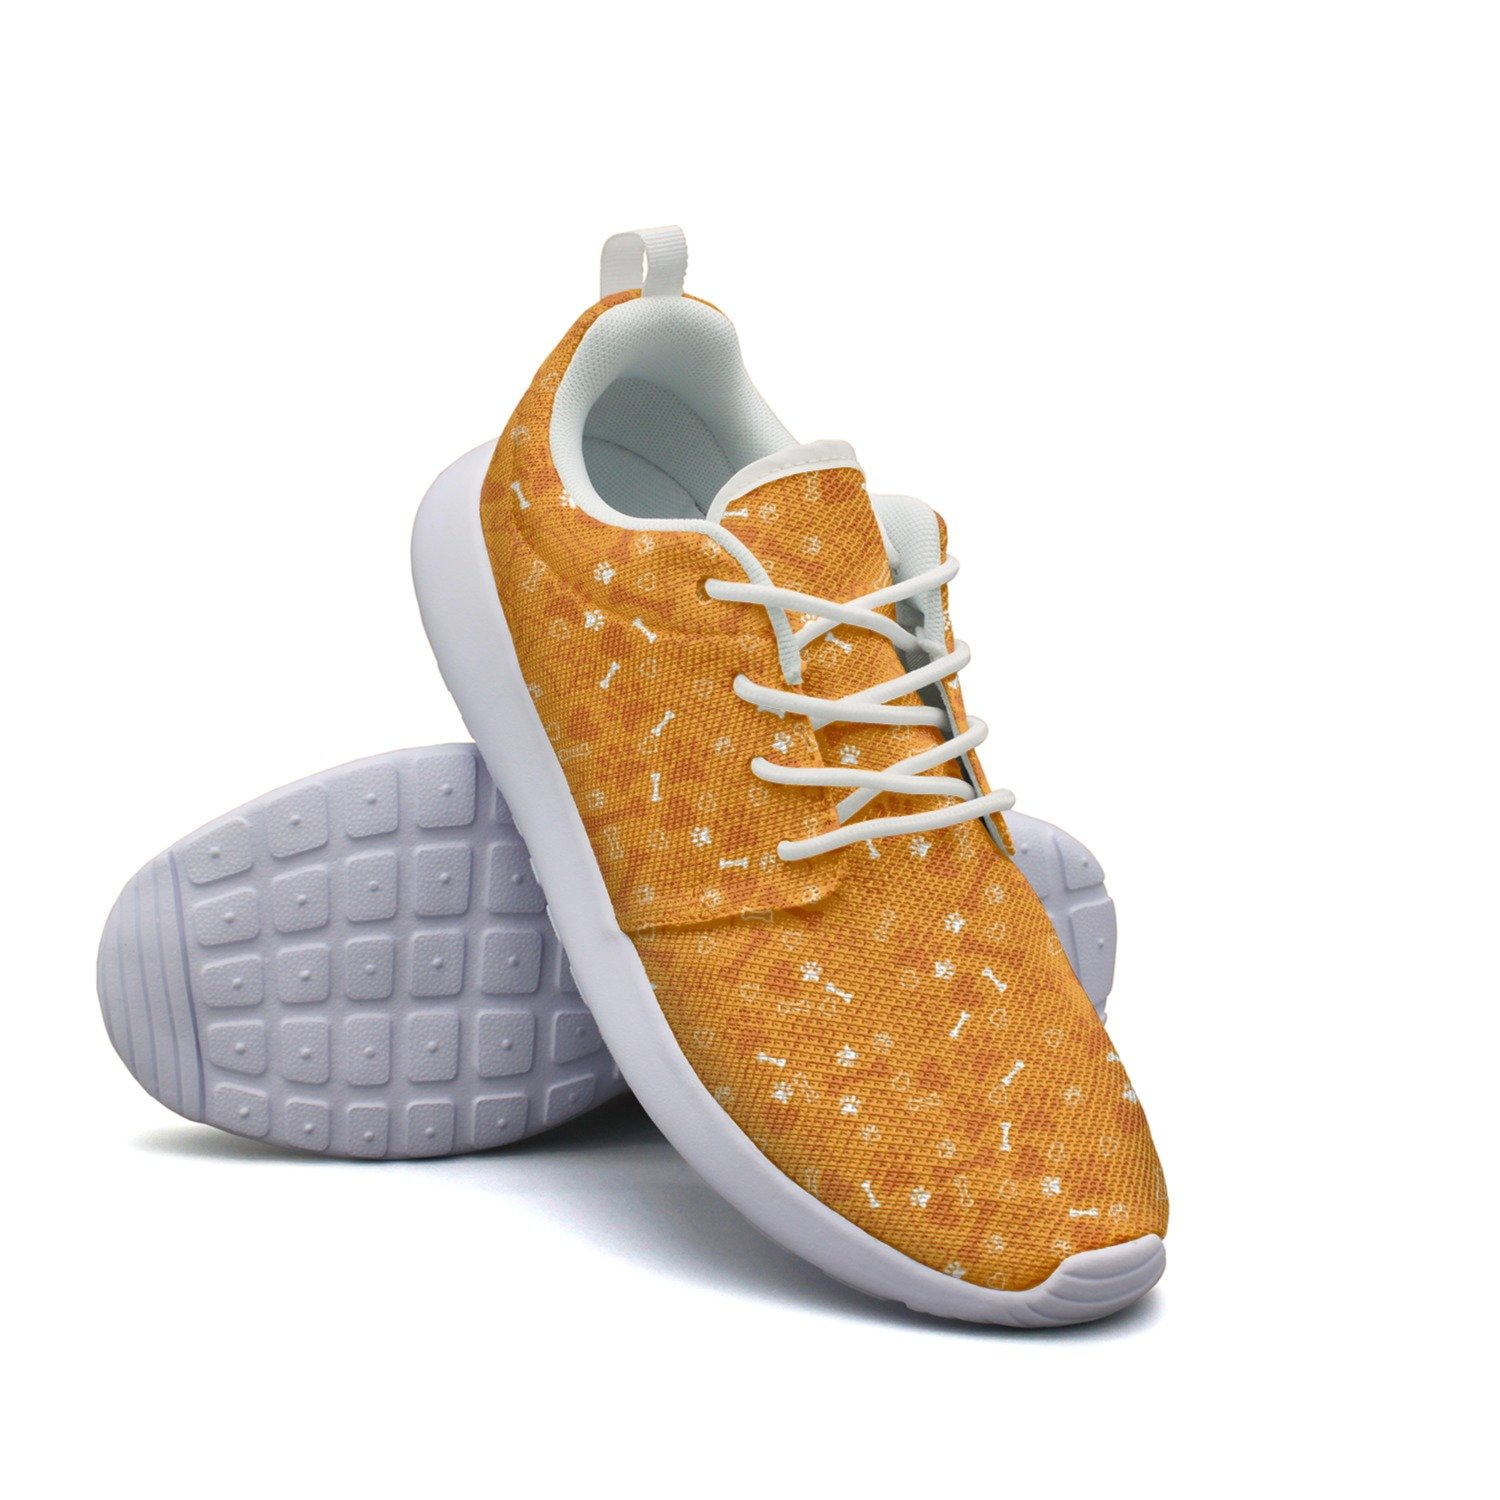 FUFGT Dog Paw Print Woman New Fashion Running Shoes Unique Active